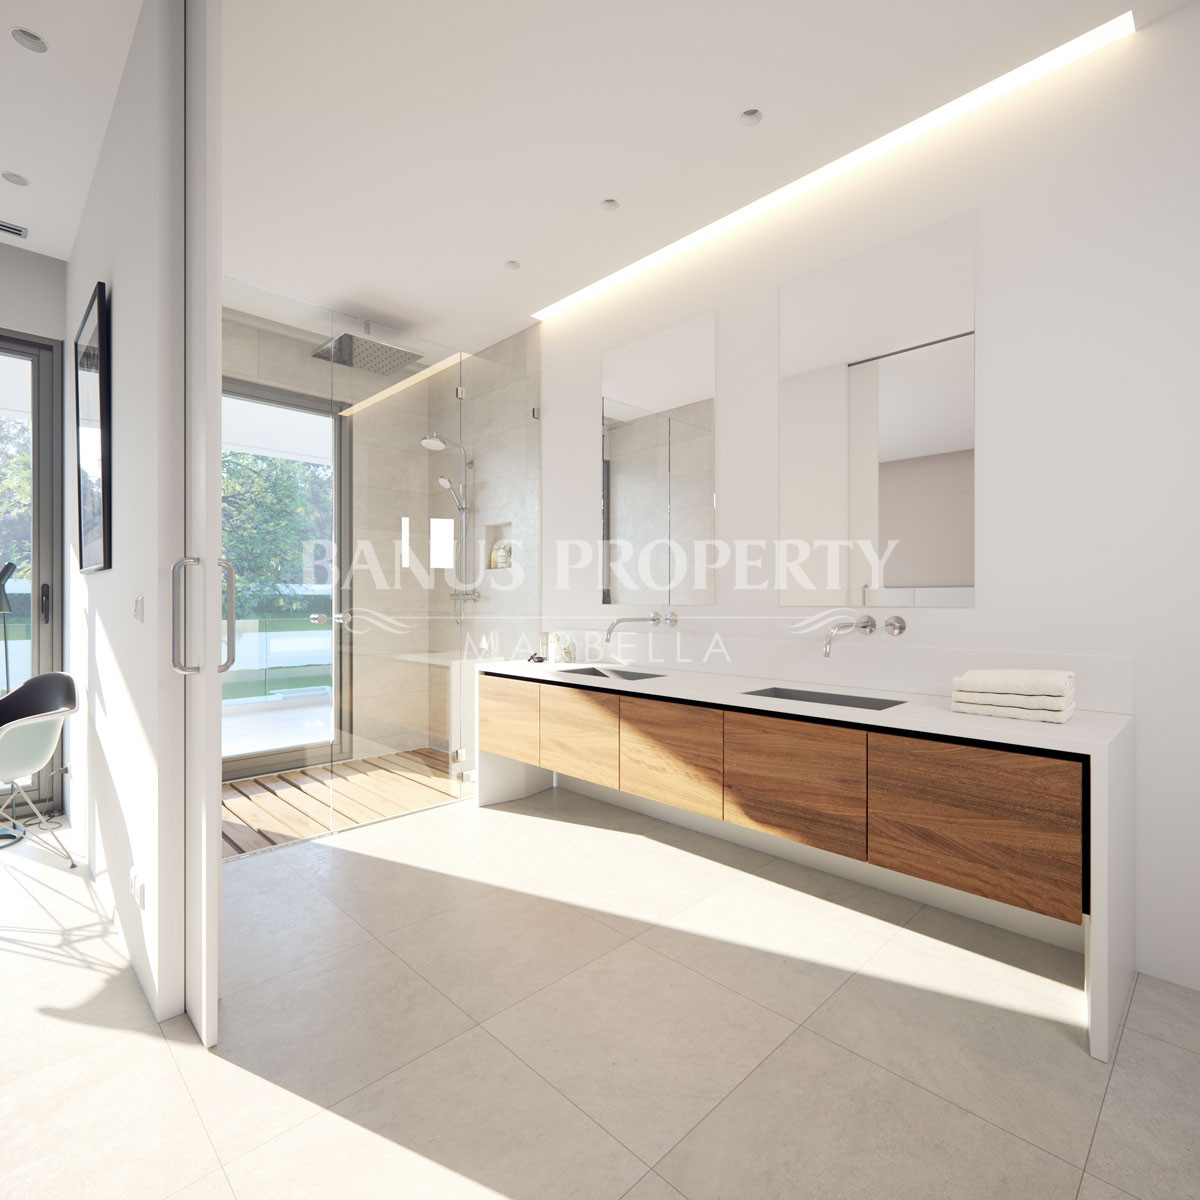 Contemporary design 4 bed villa for sale within walking distance to Puerto Banus